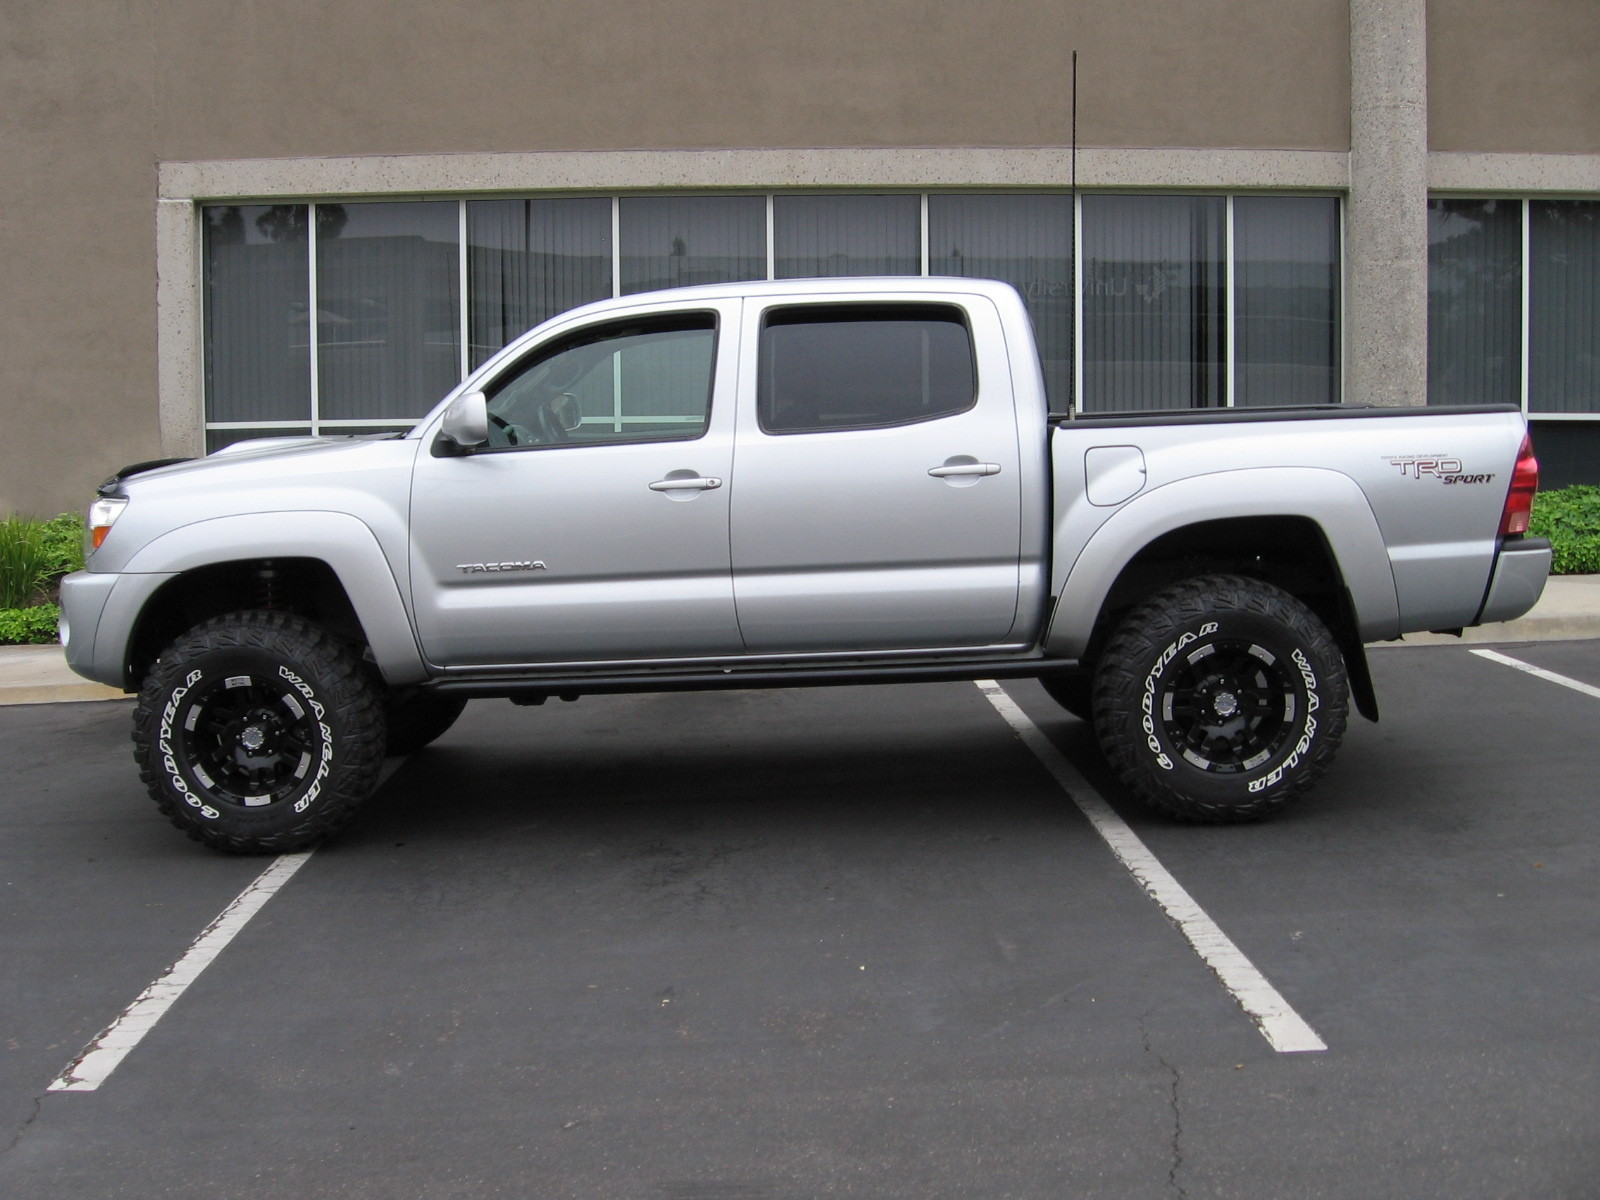 4x4trd 2007 toyota tacoma double cab specs photos modification info at cardomain. Black Bedroom Furniture Sets. Home Design Ideas